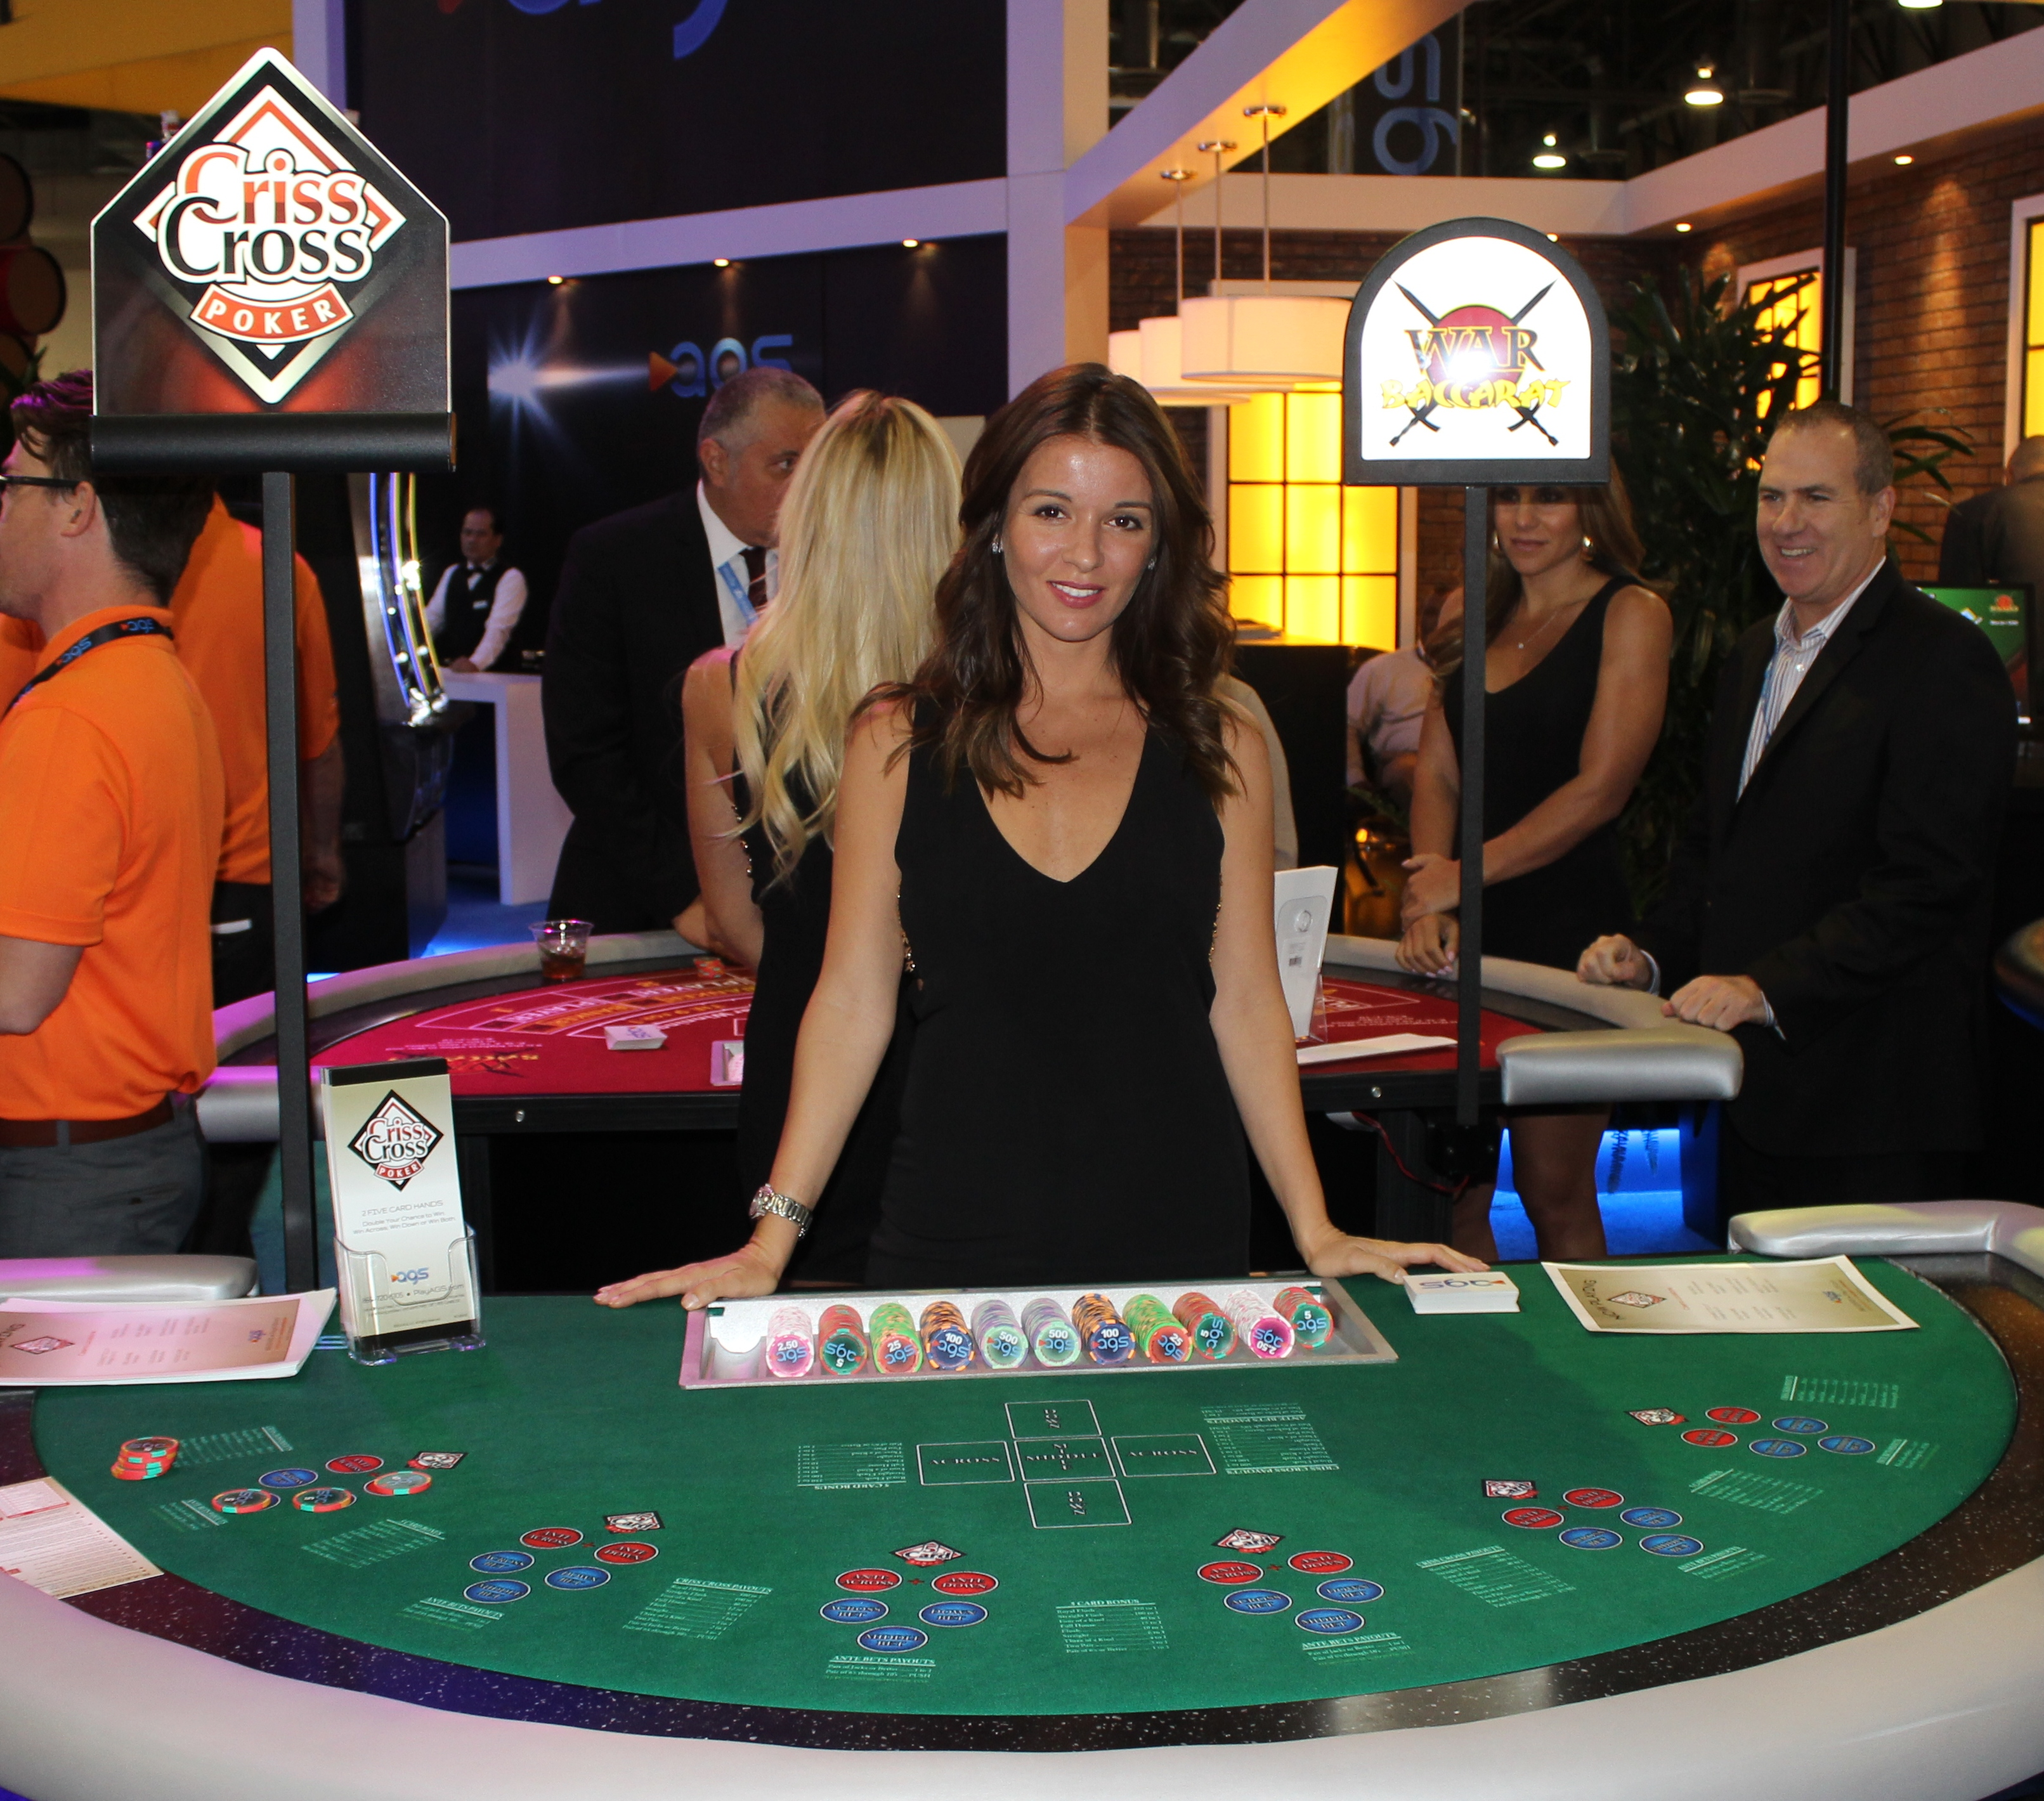 Introduction to casino poker horse gambling online